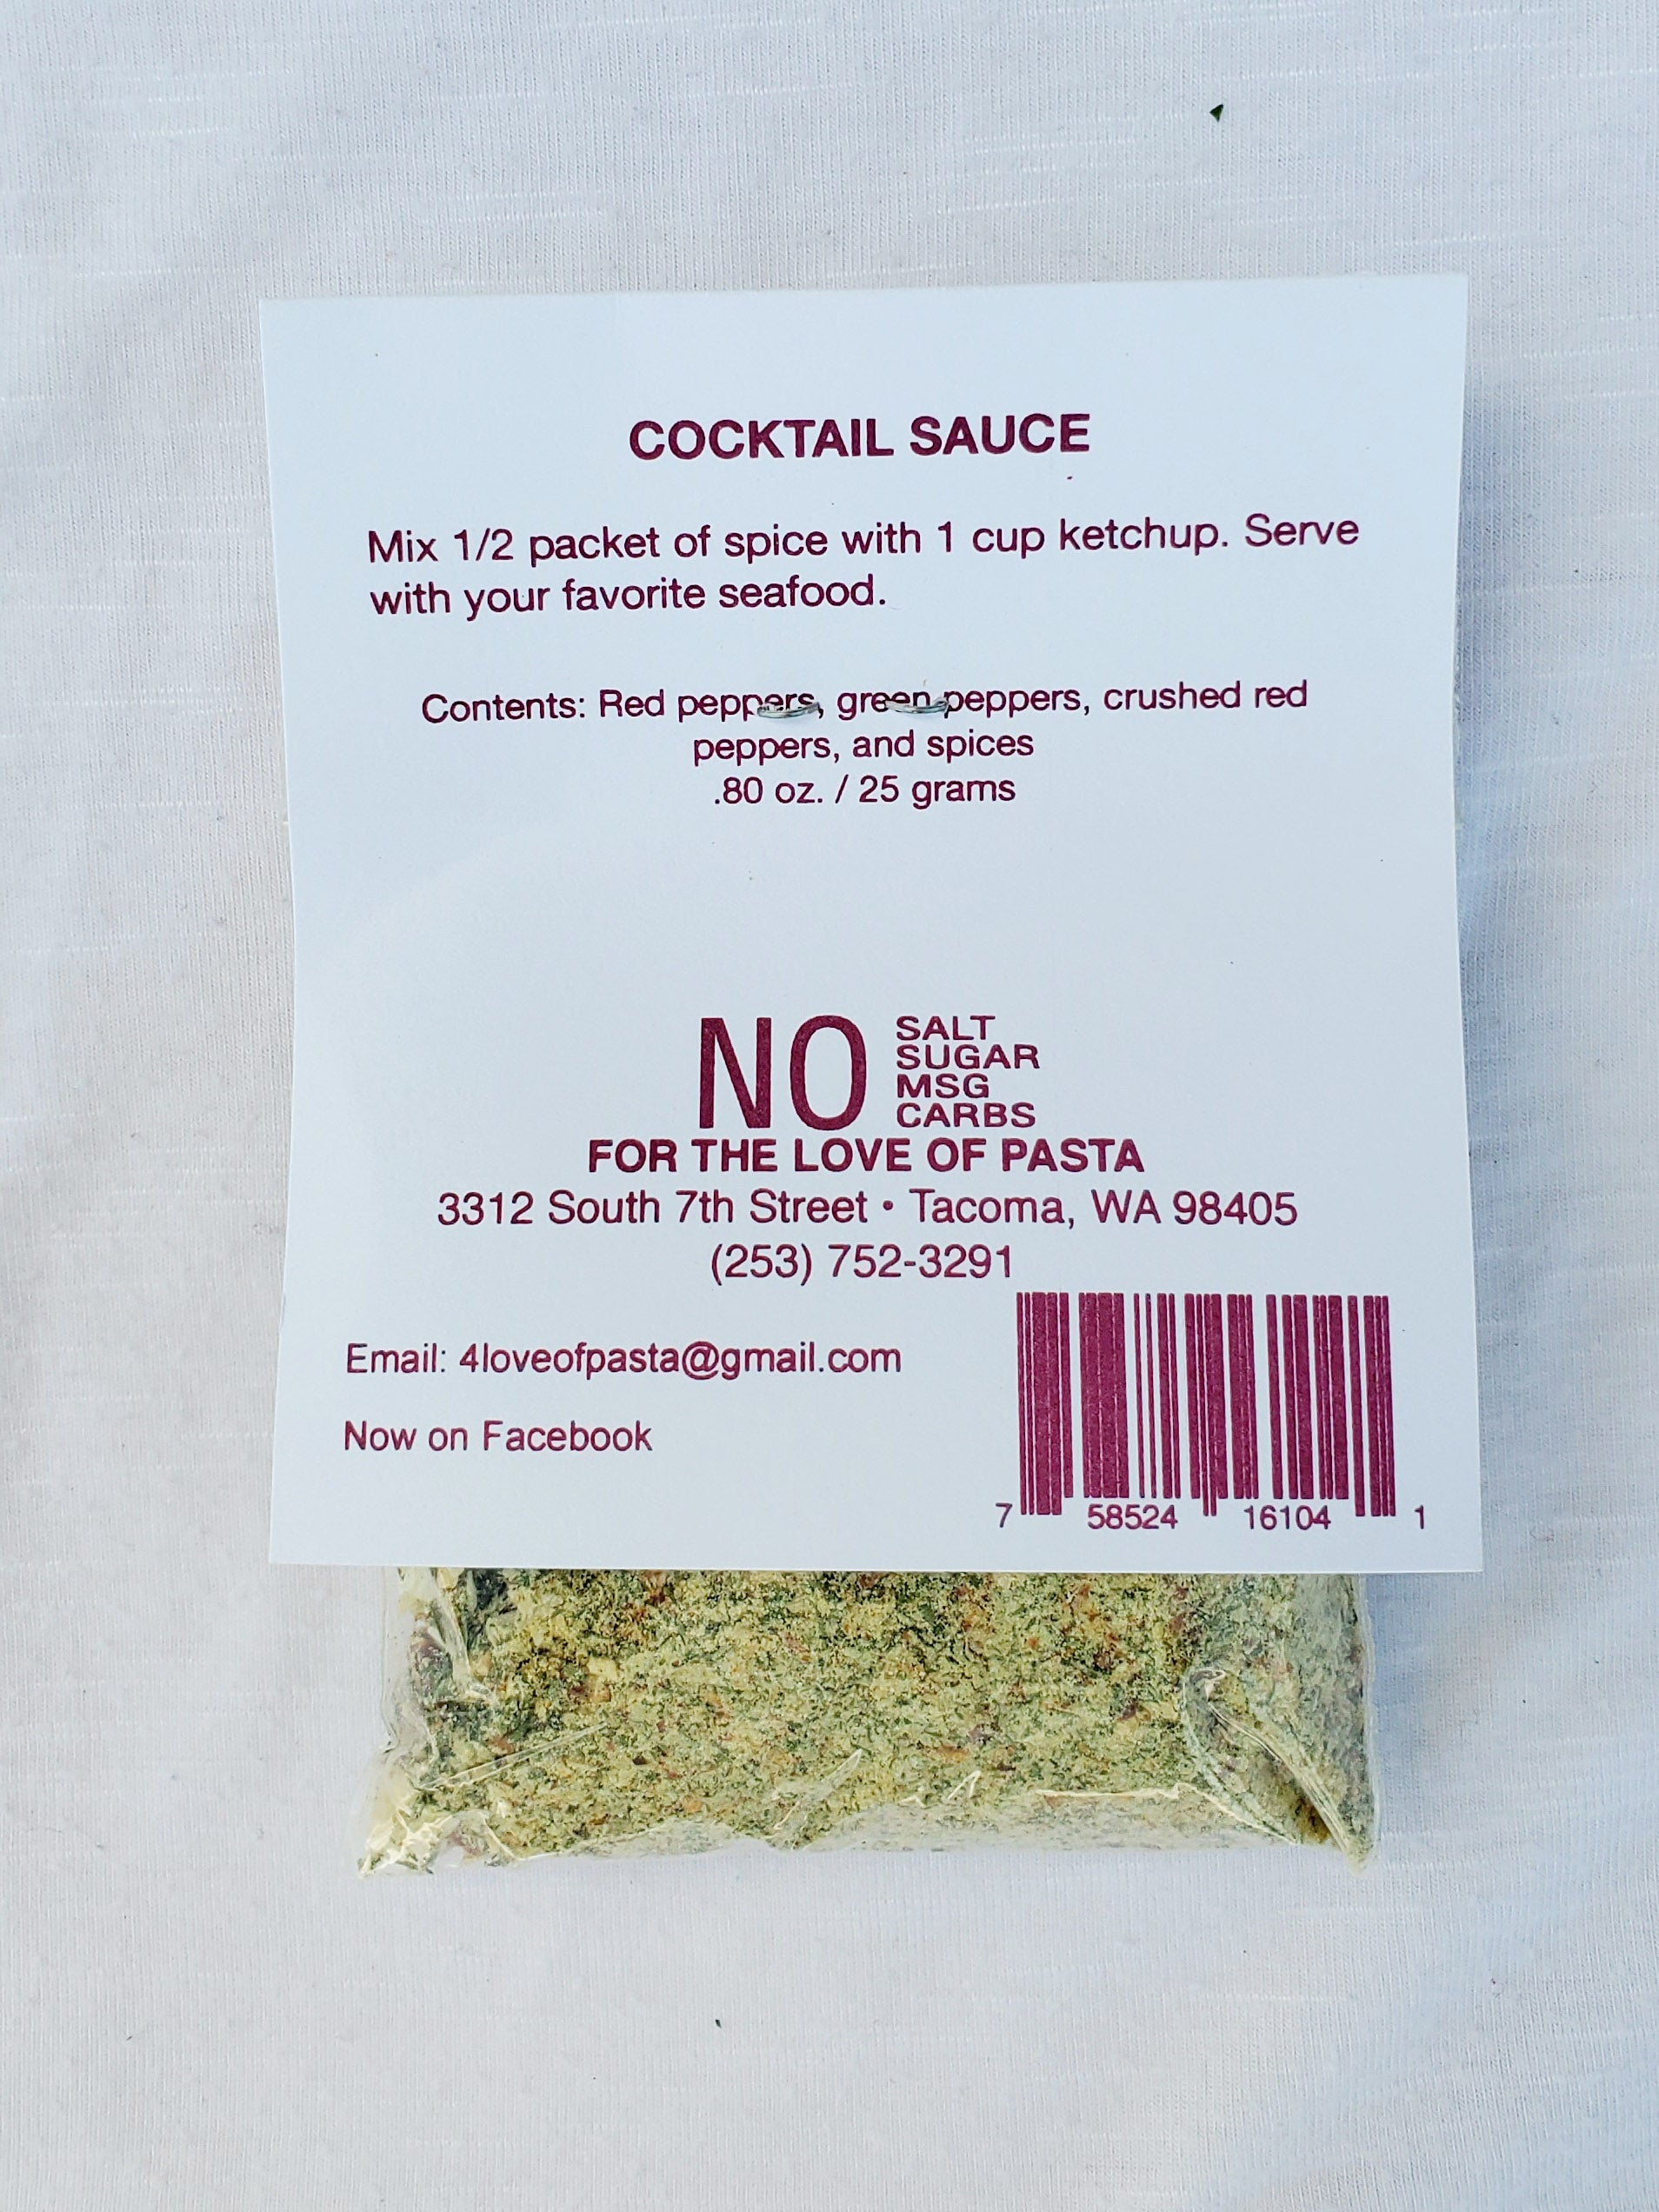 Cocktail Sauce Spice Blend Contains: Red peppers, green peppers, crushed red peppers, and spices. 25grams